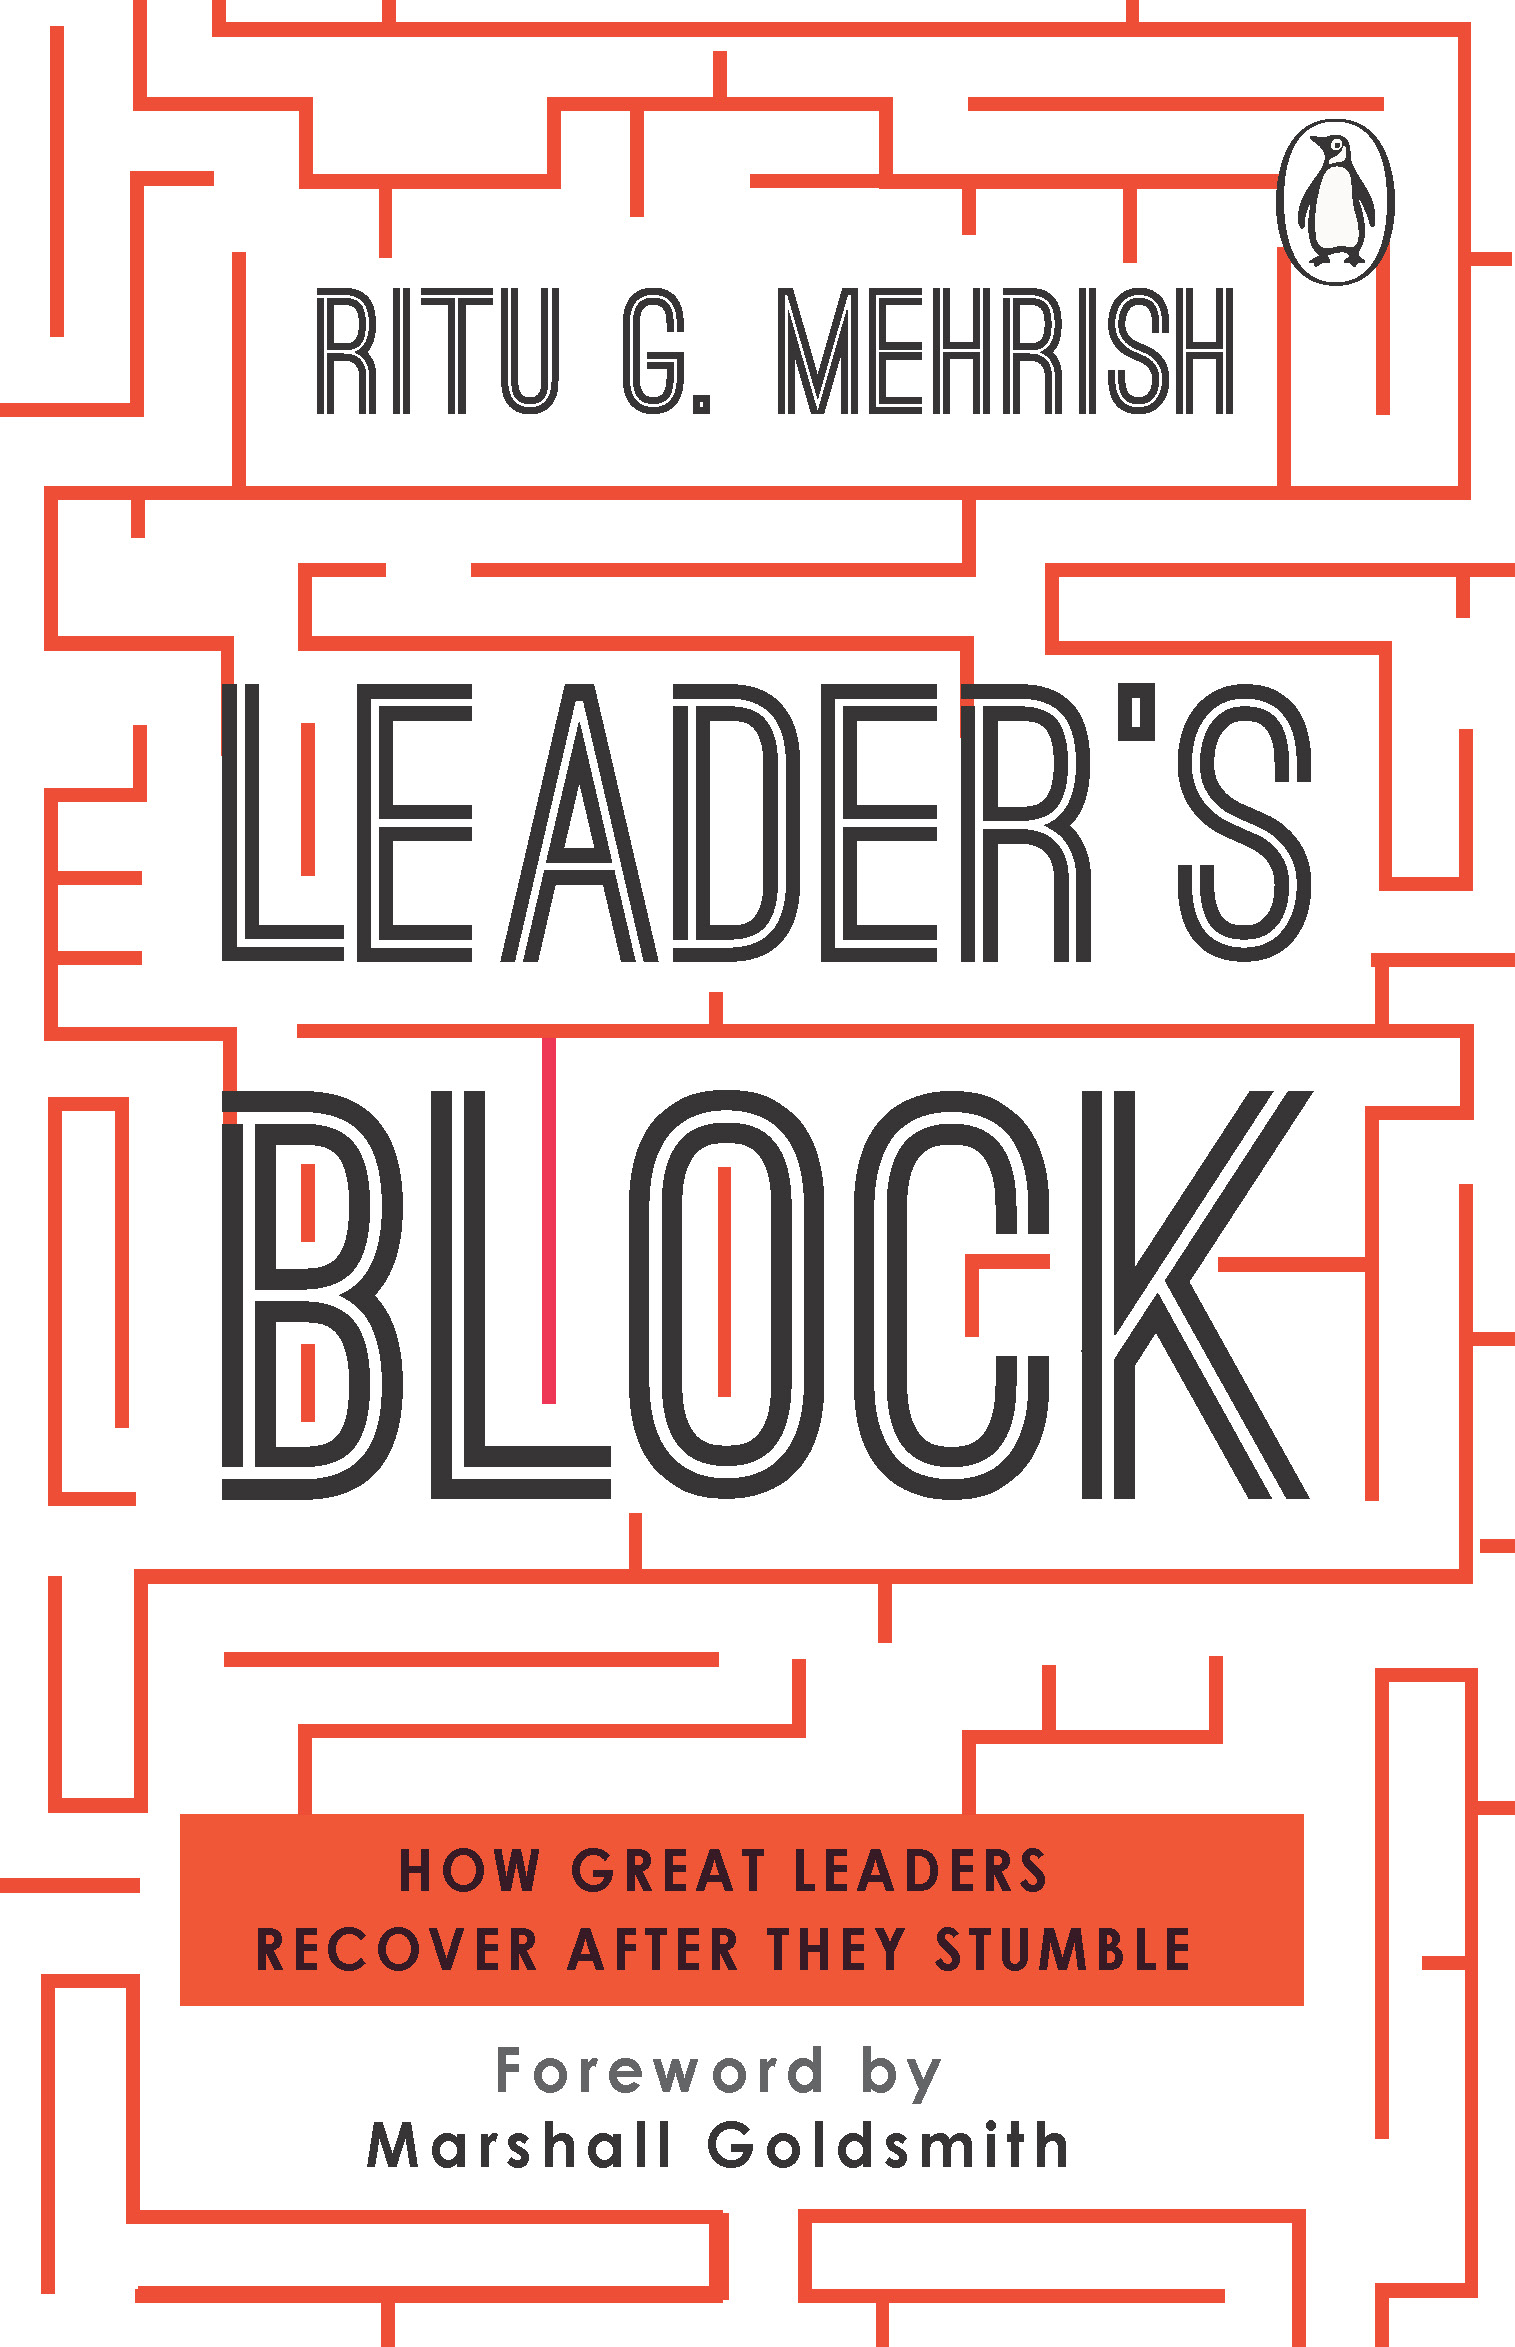 Leader's Block: How Great Leaders Recover After they 